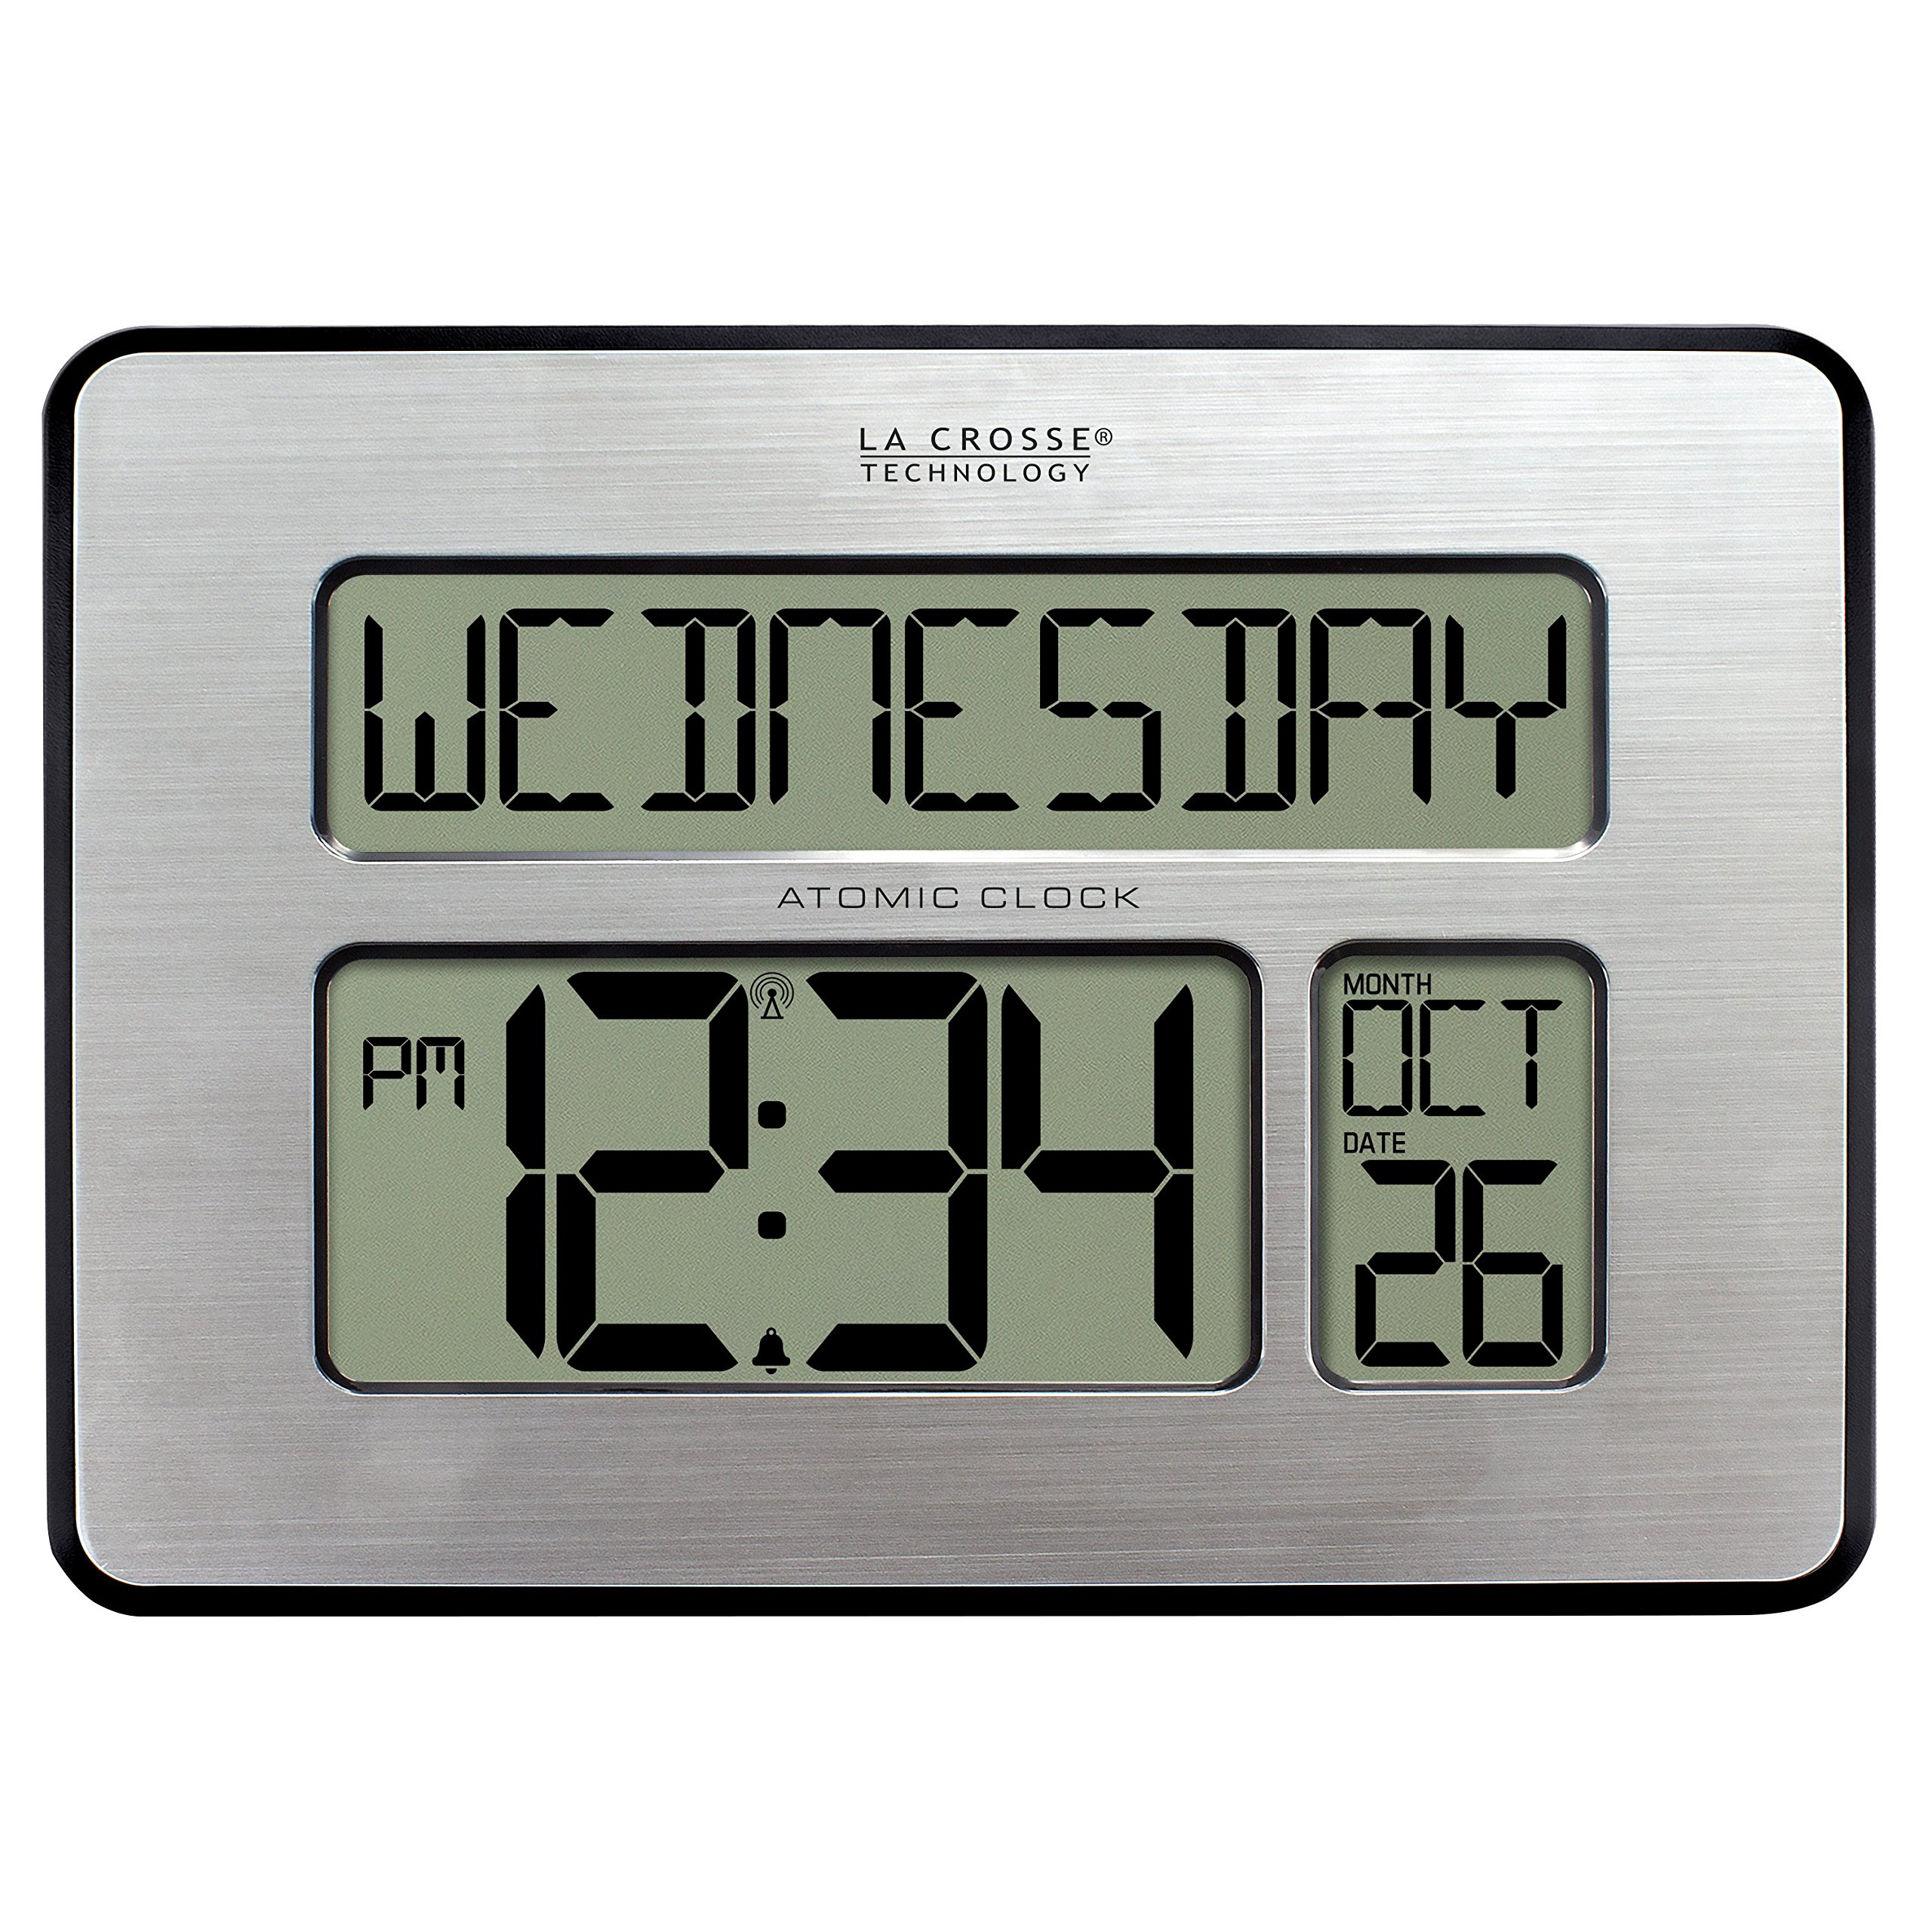 La Crosse Technology 513-1419BLv3-INT Backlight Atomic Full Calendar Clock with Extra Large Digits for the Elderly